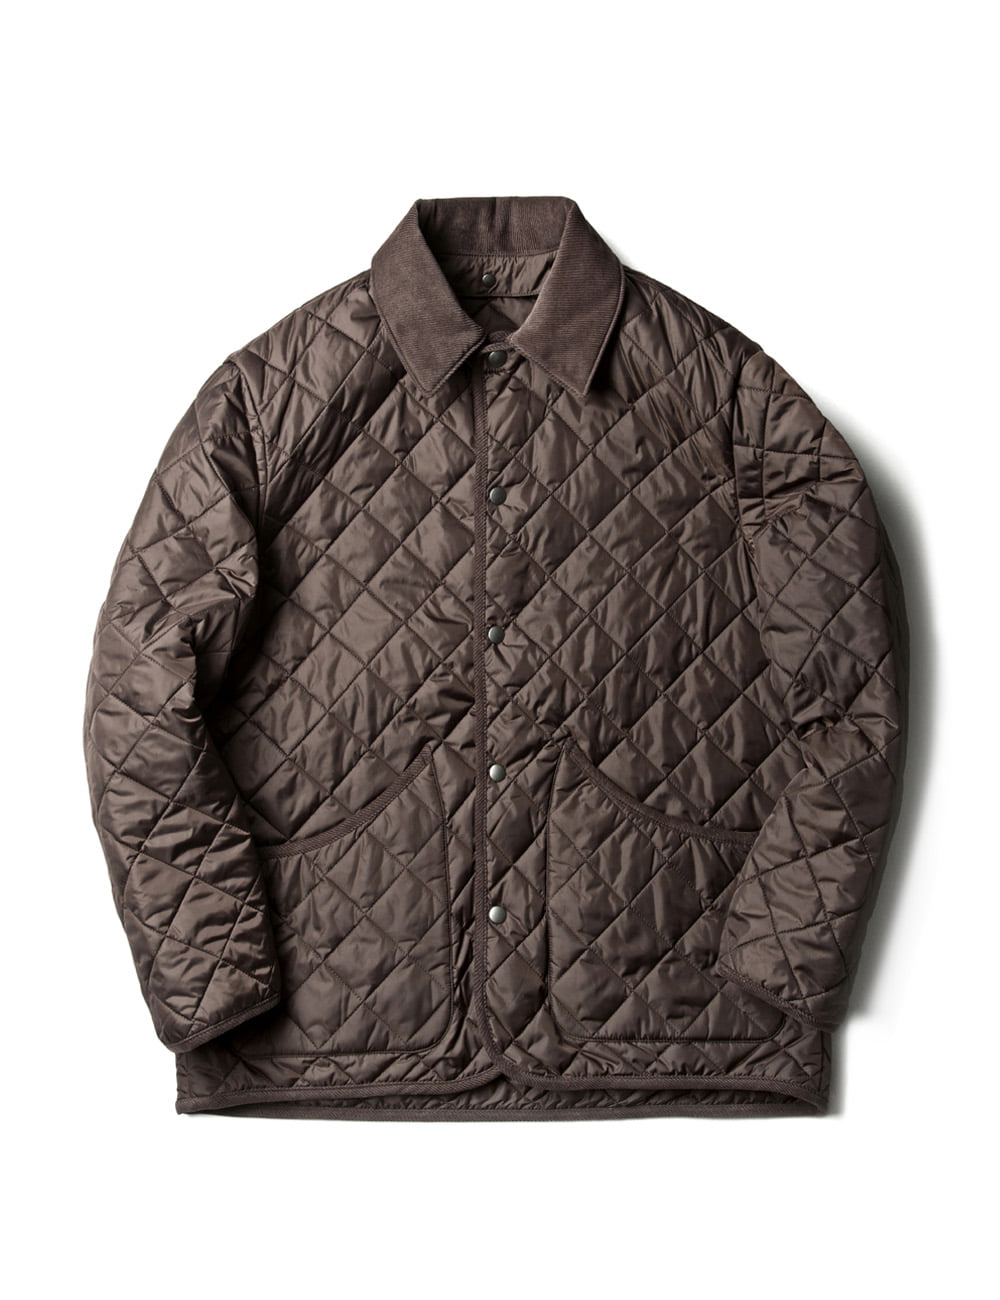 *RESTOCK [ESFAI] VOL 3. SN26 DIAMOND QUILTED JACKET (BROWN)